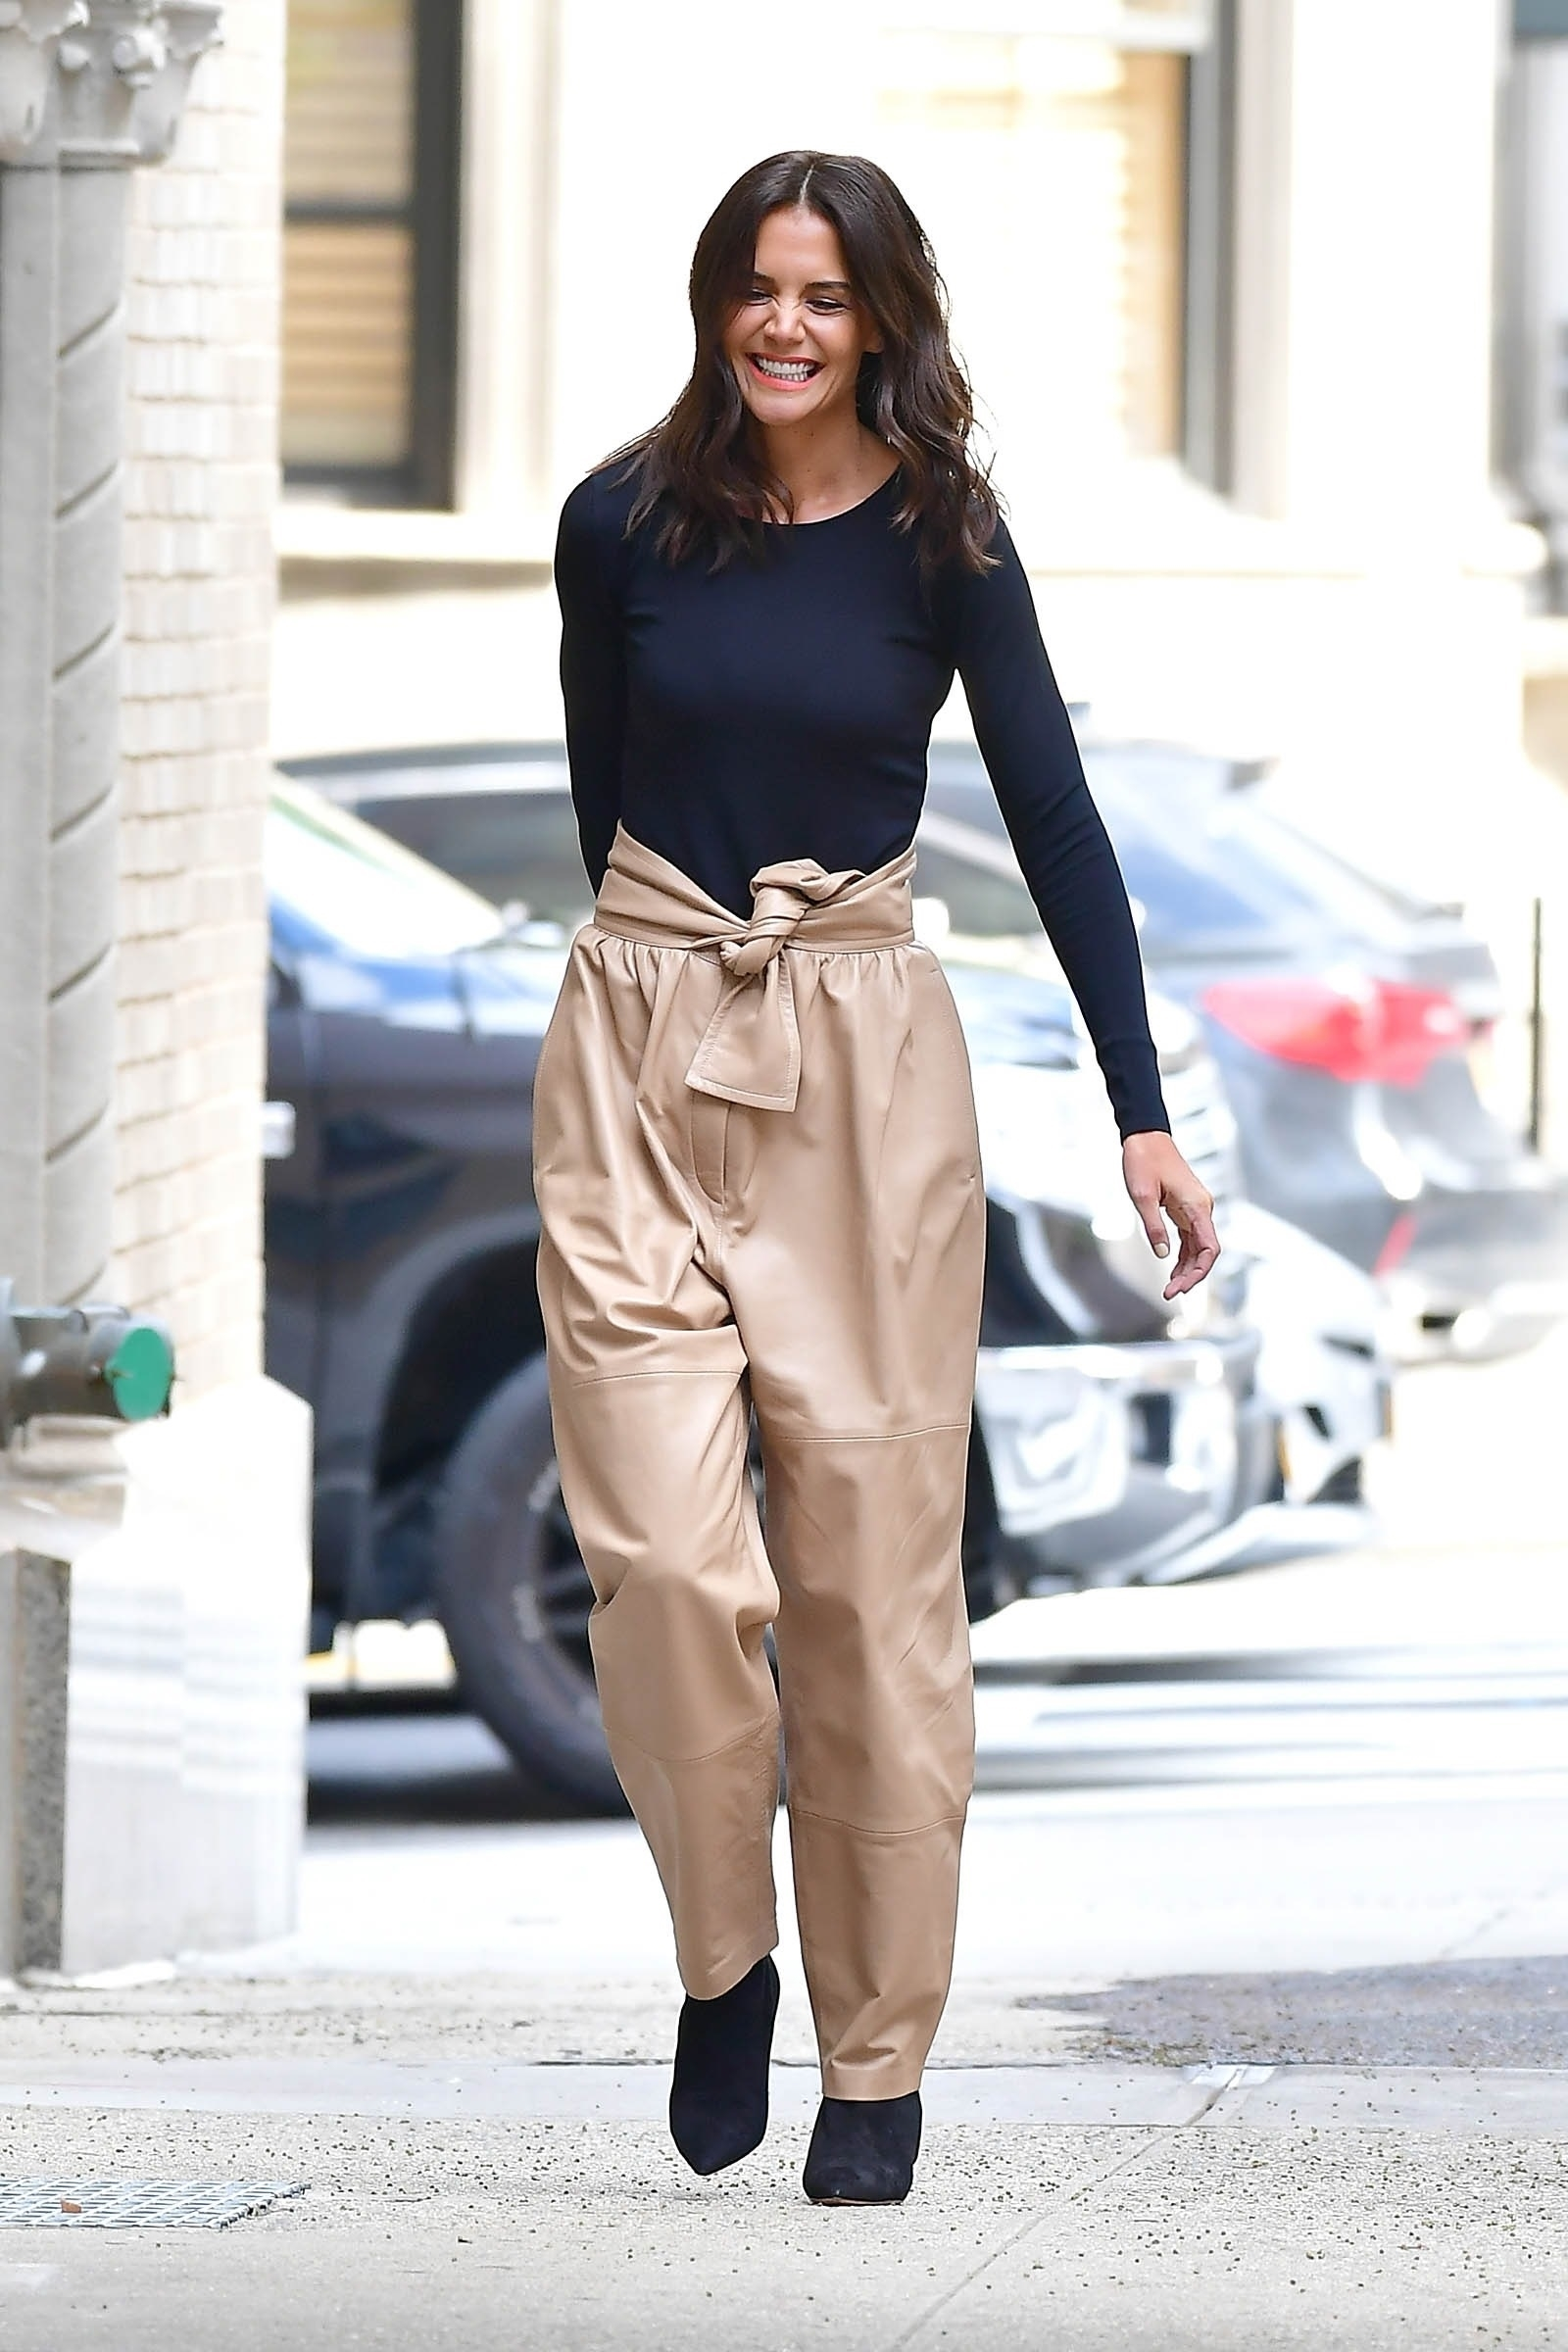 New York, Ny  - Katie Holmes turned photographer arriving to her house with a male model  BACKGRID USA 9 SEPTEMBER 2019, Image: 469924977, License: Rights-managed, Restrictions: RIGHTS: WORLDWIDE EXCEPT IN FRANCE, GERMANY, POLAND, Model Release: no, Credit line: Profimedia, Backgrid USA